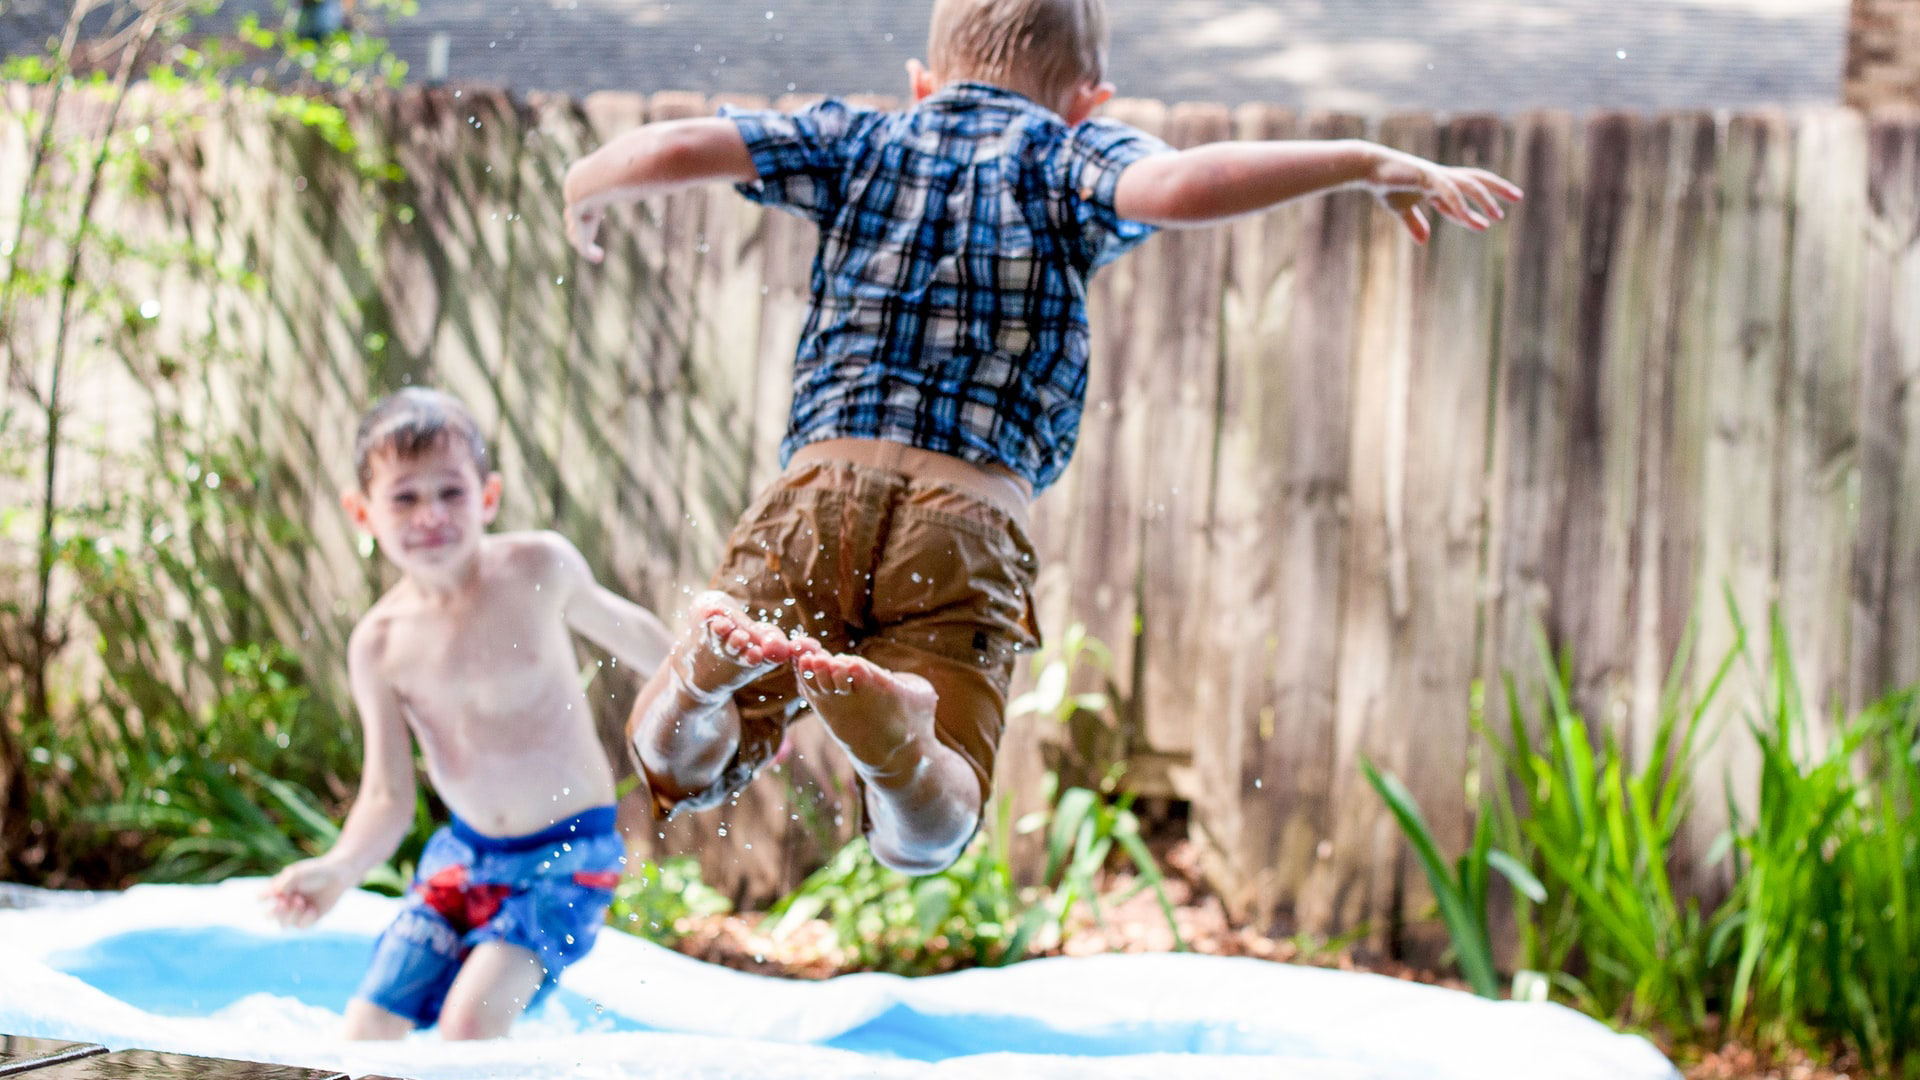 Get your backyard ready for the summer with our 11 picks of the best outdoor toys